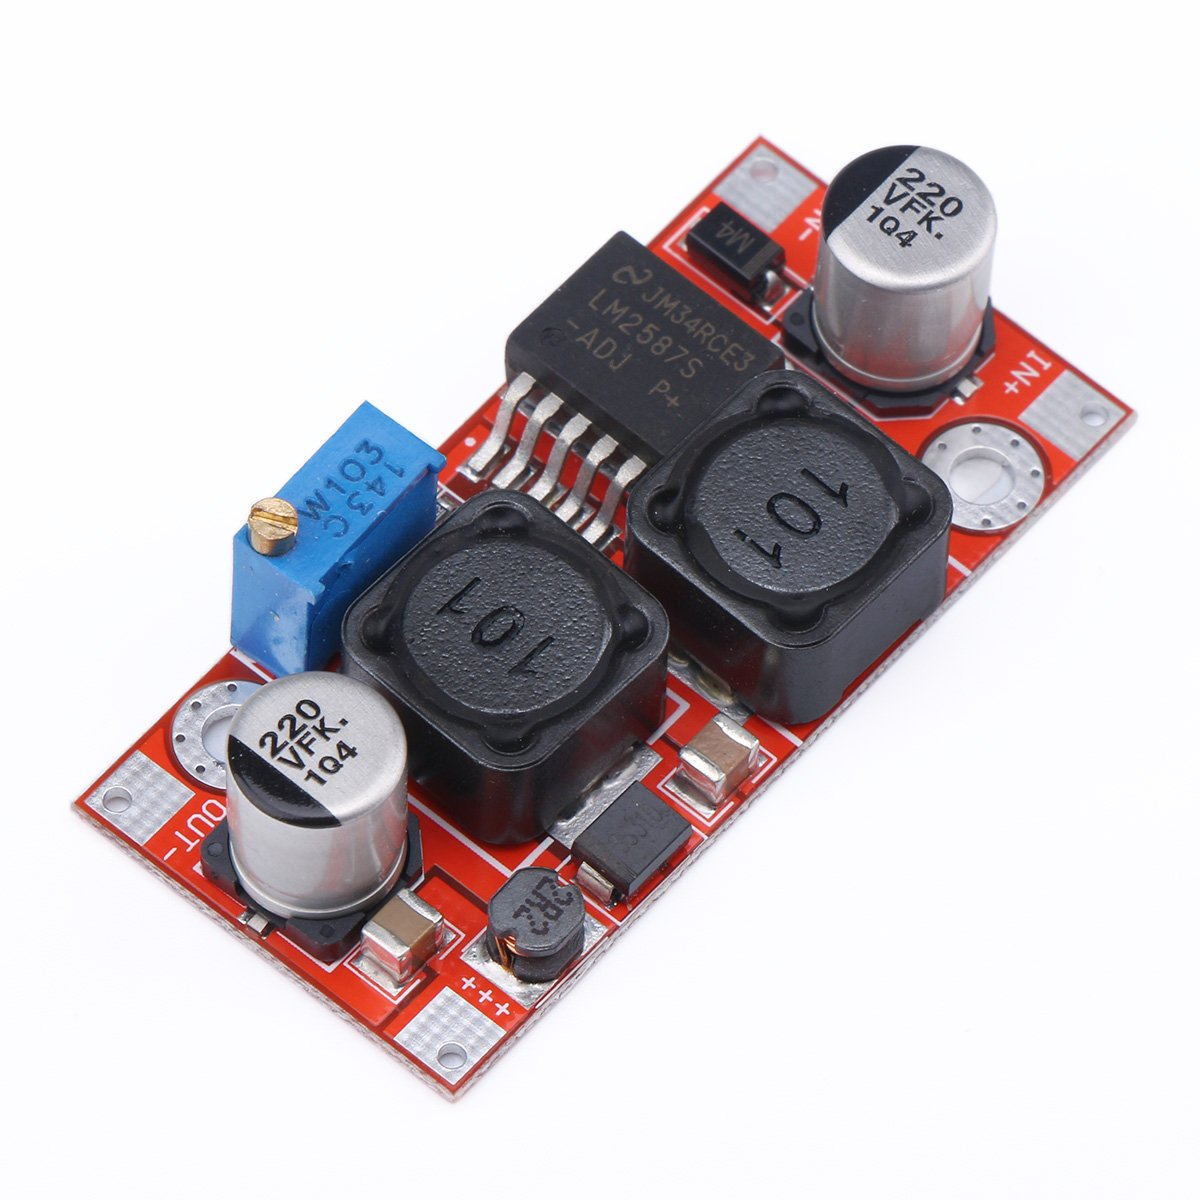 DC Converter 3-35V to 1.2-30V Auto Step Up Down Module Power Module QS-1212CBD-24W